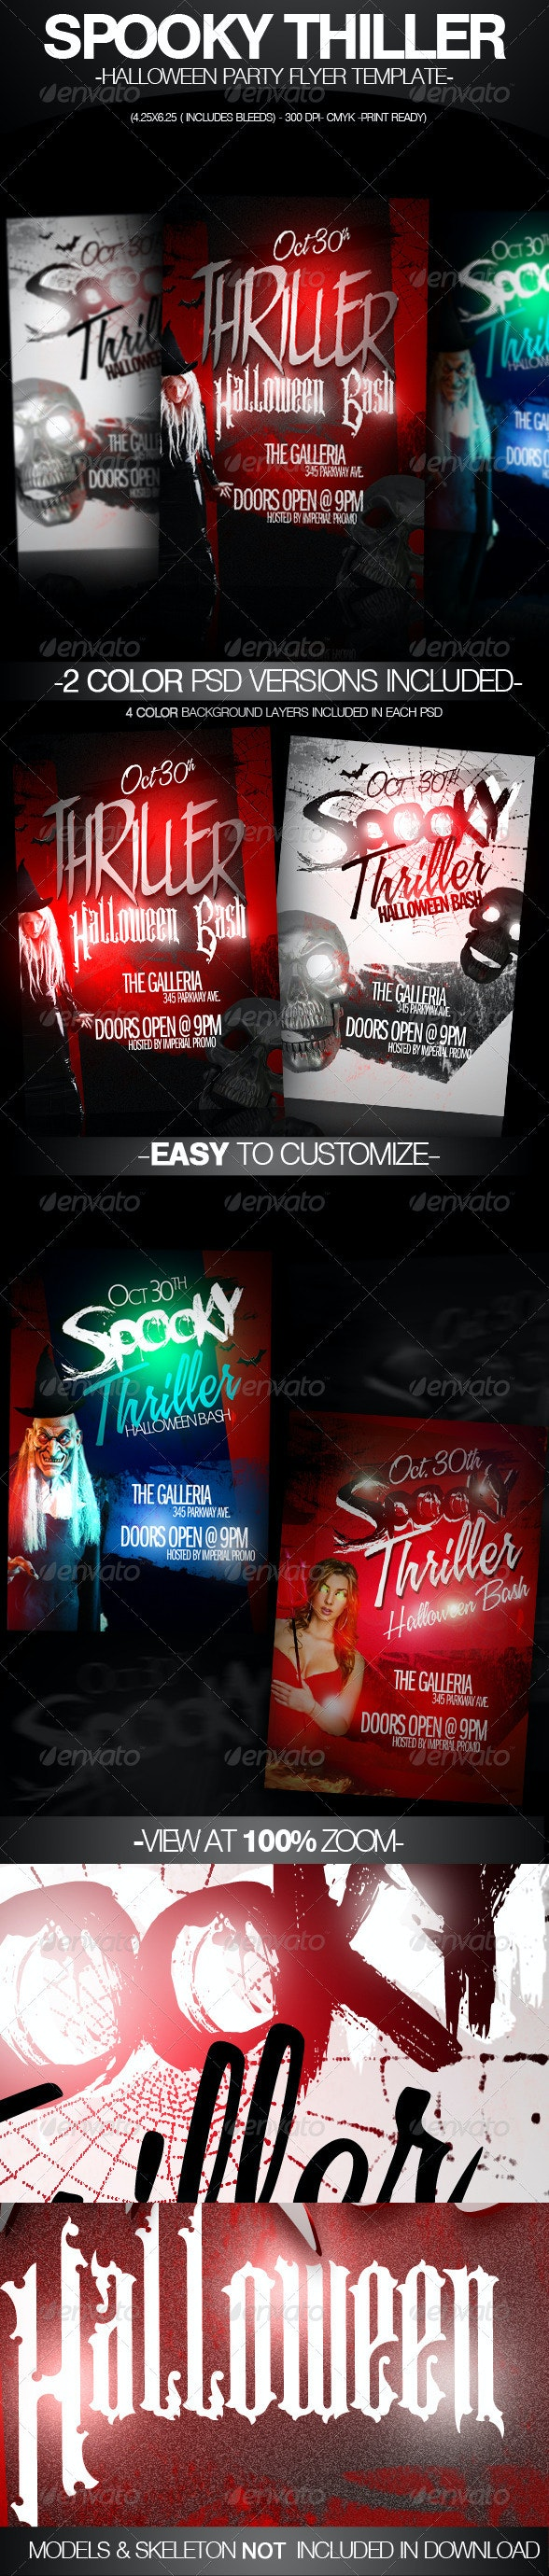 Spooky Thriller Halloween Flyer Template - Clubs & Parties Events